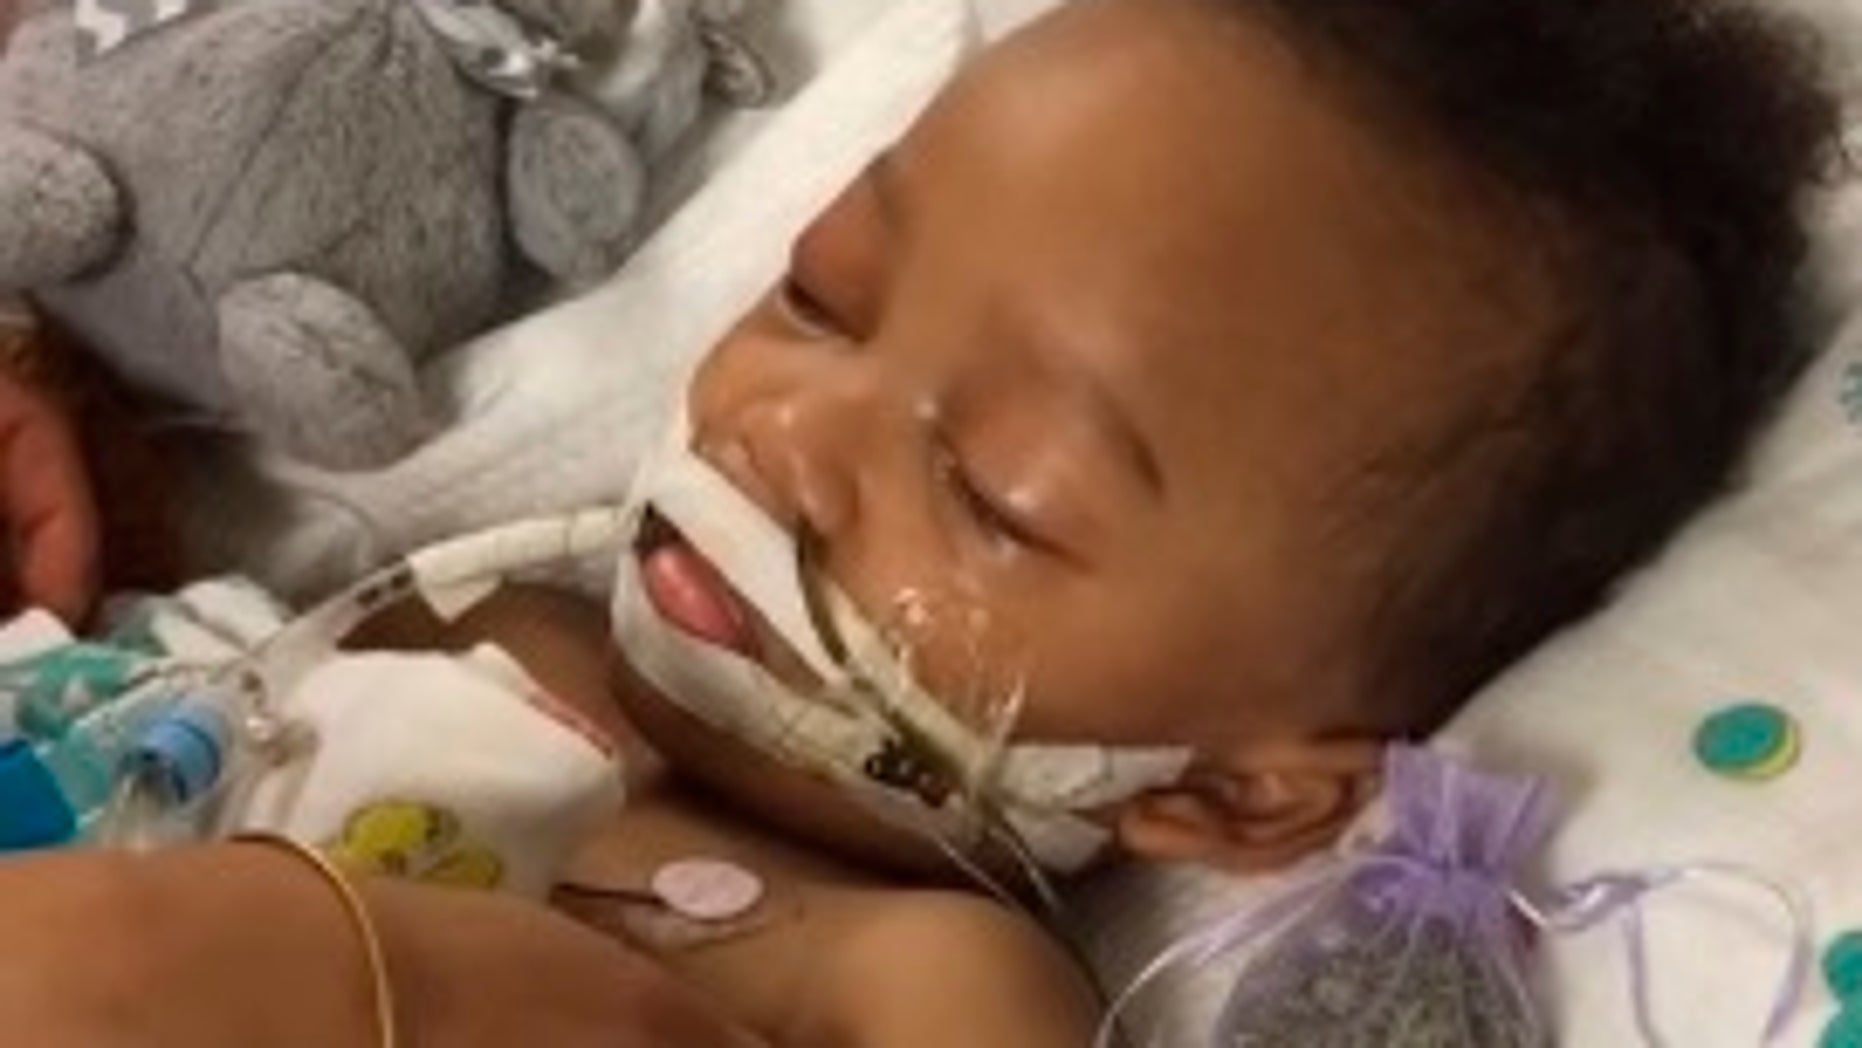 Israel Stinson was declared brain dead after suffering from an apparent asthma attack.